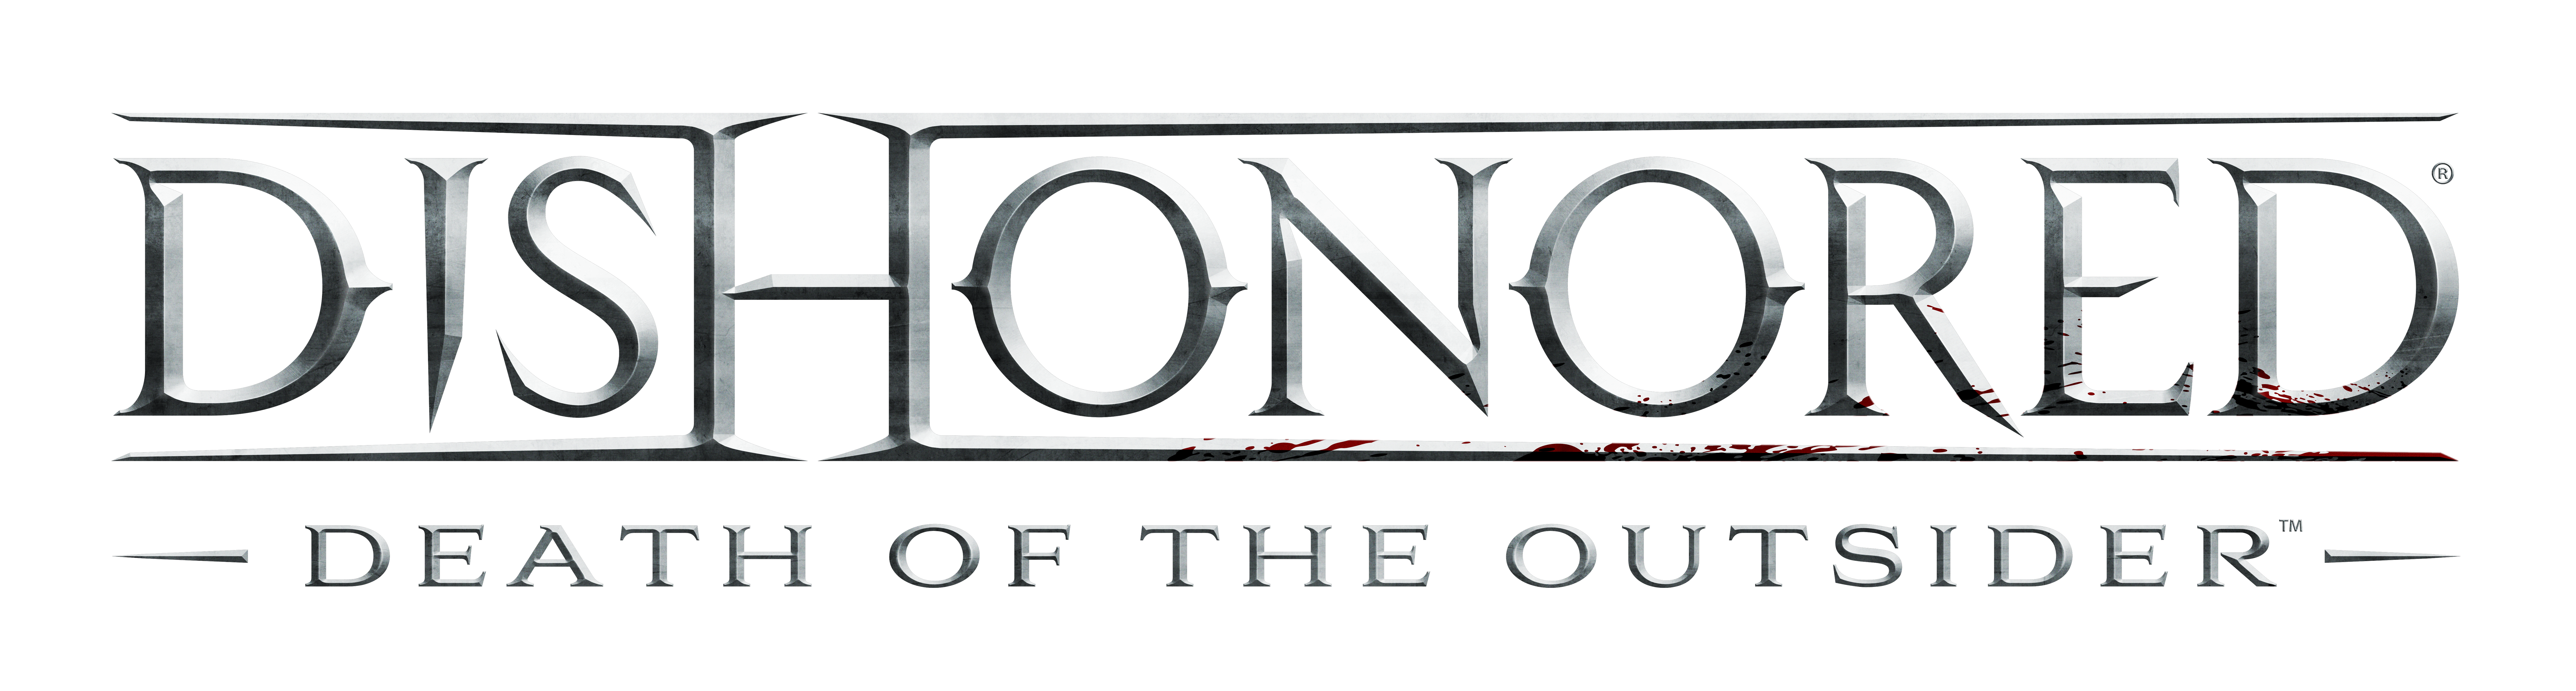 Dishonored 2 logo png. Death of the outsider